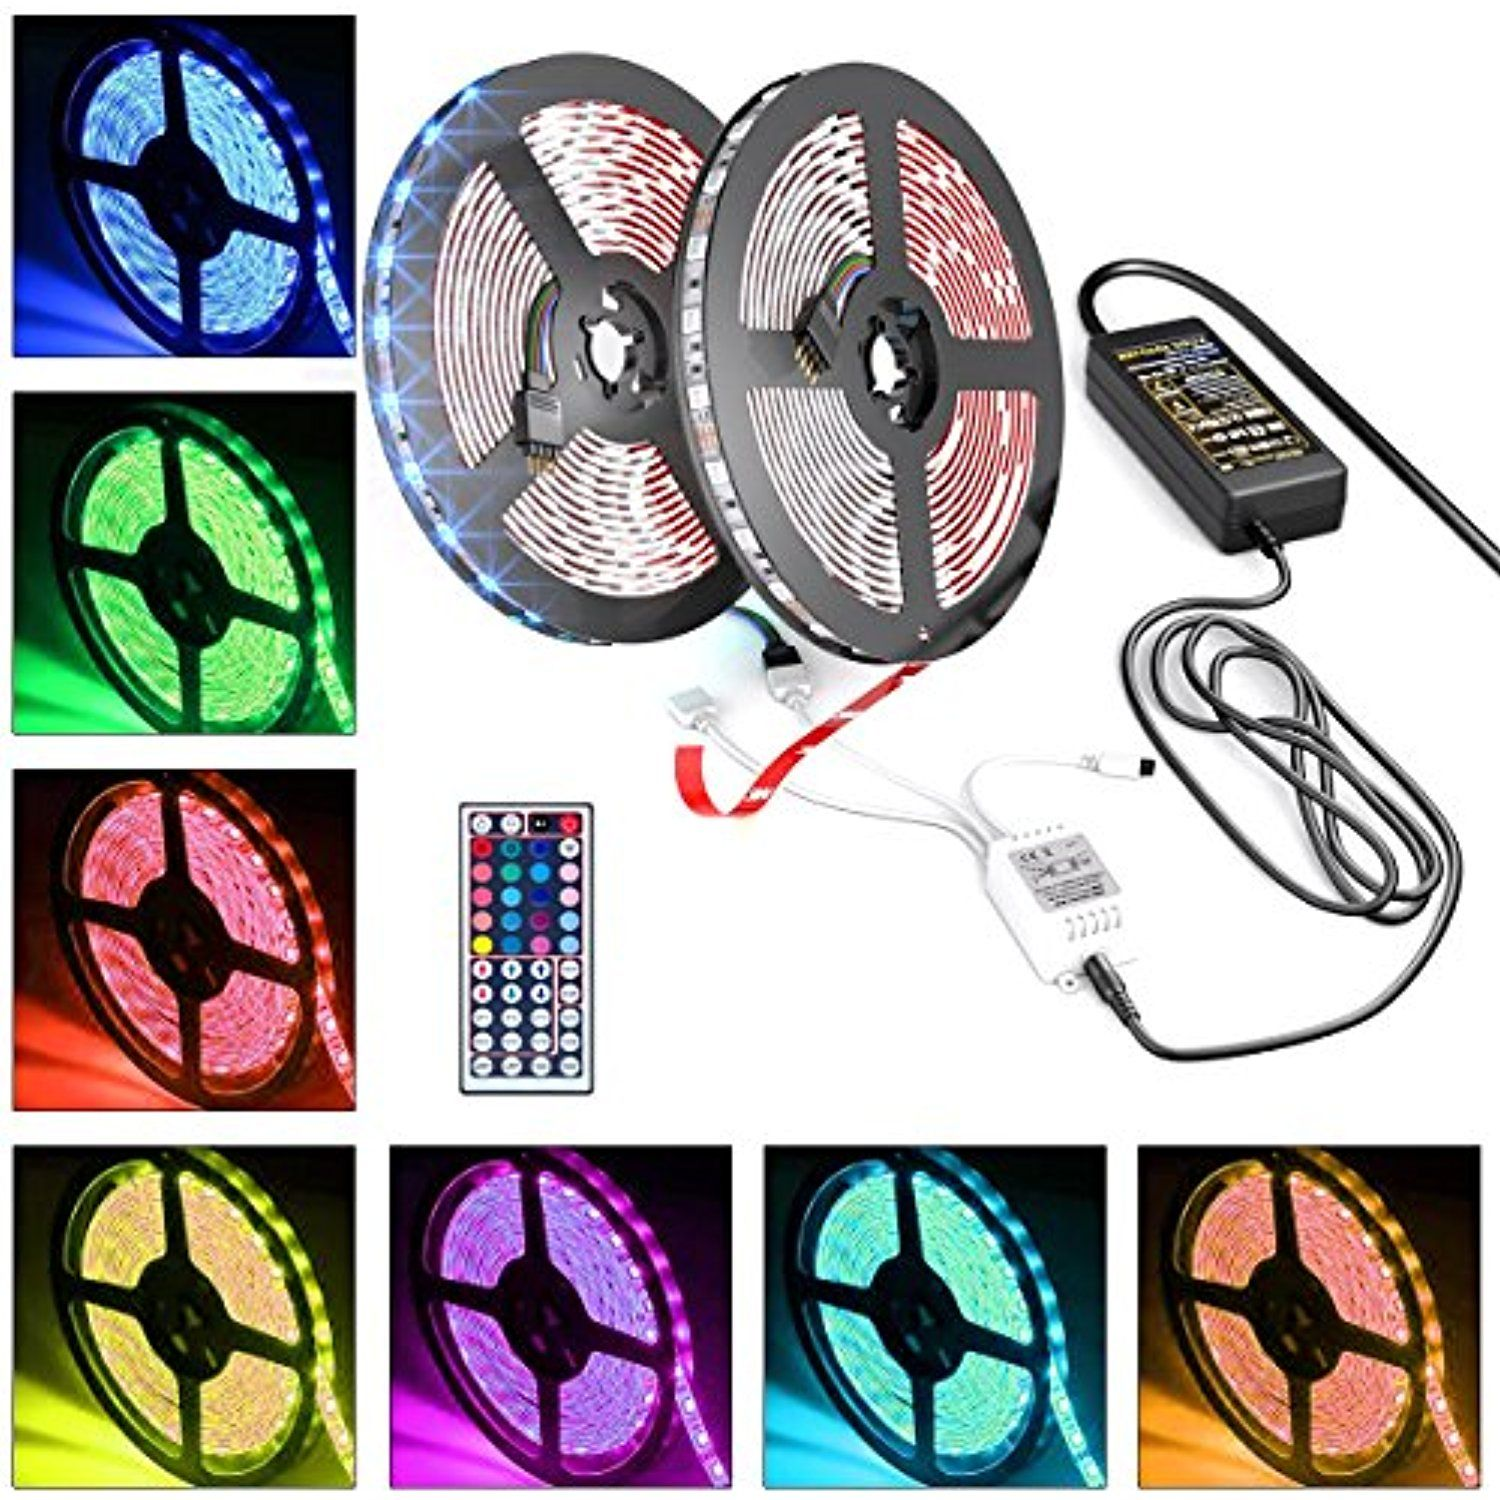 Blisso 2018New LED Strip Lights Kit âu20acu201c 32.8ft 300 LEDs SMD 5050 RGB LightExtra Adhesive 3M Tape with 44 Key Remote Controller Flexible Changing ...  sc 1 st  Pinterest & Blisso 2018New LED Strip Lights Kit âu20acu201c 32.8ft 300 LEDs SMD 5050 RGB ...